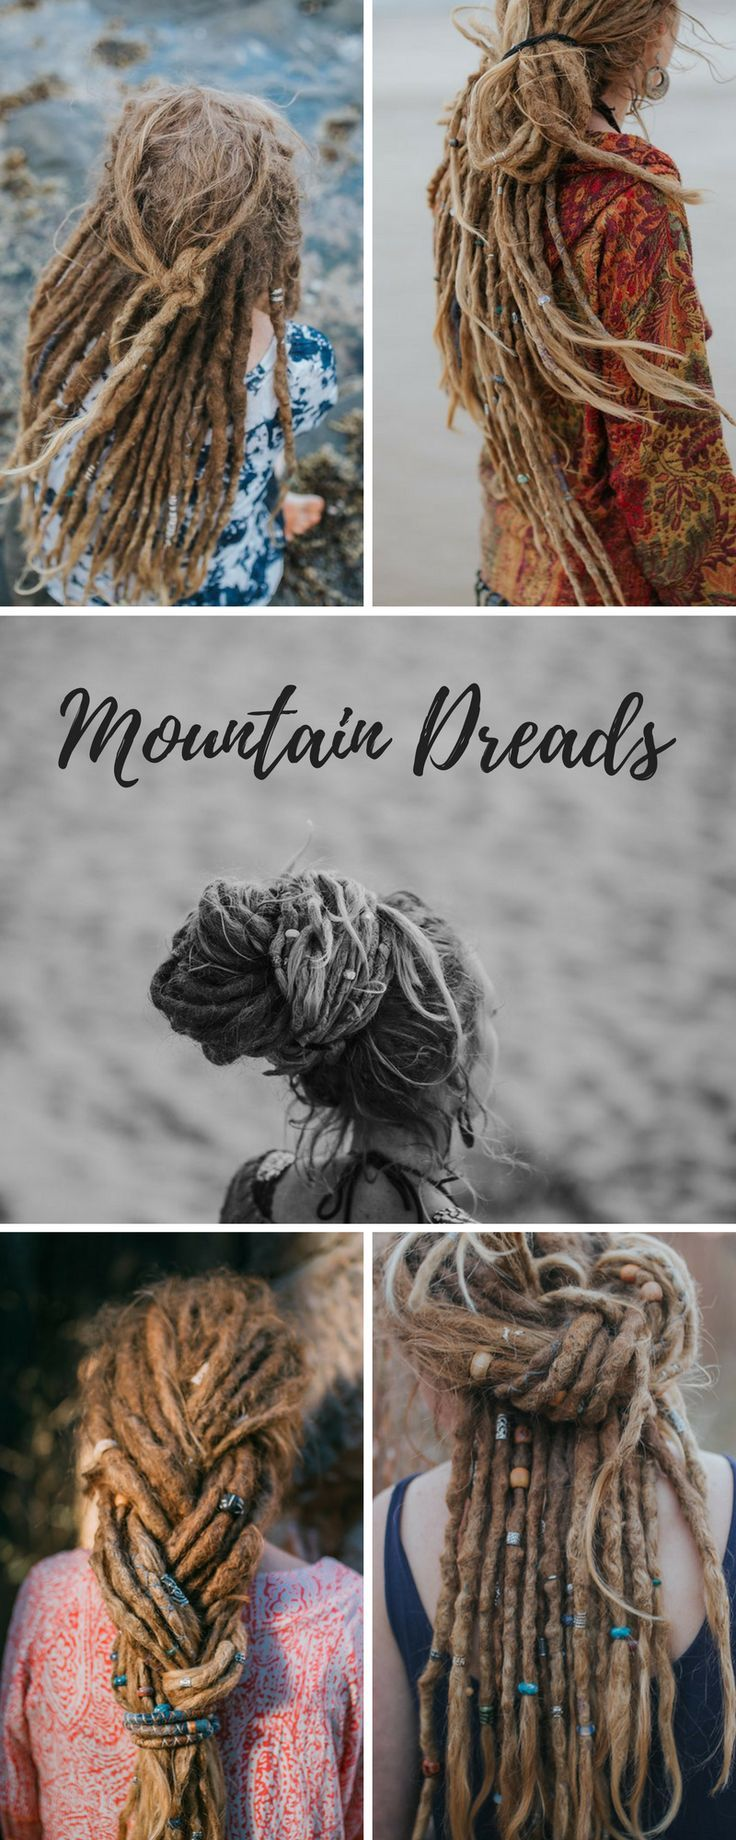 Mountain Dreads Story